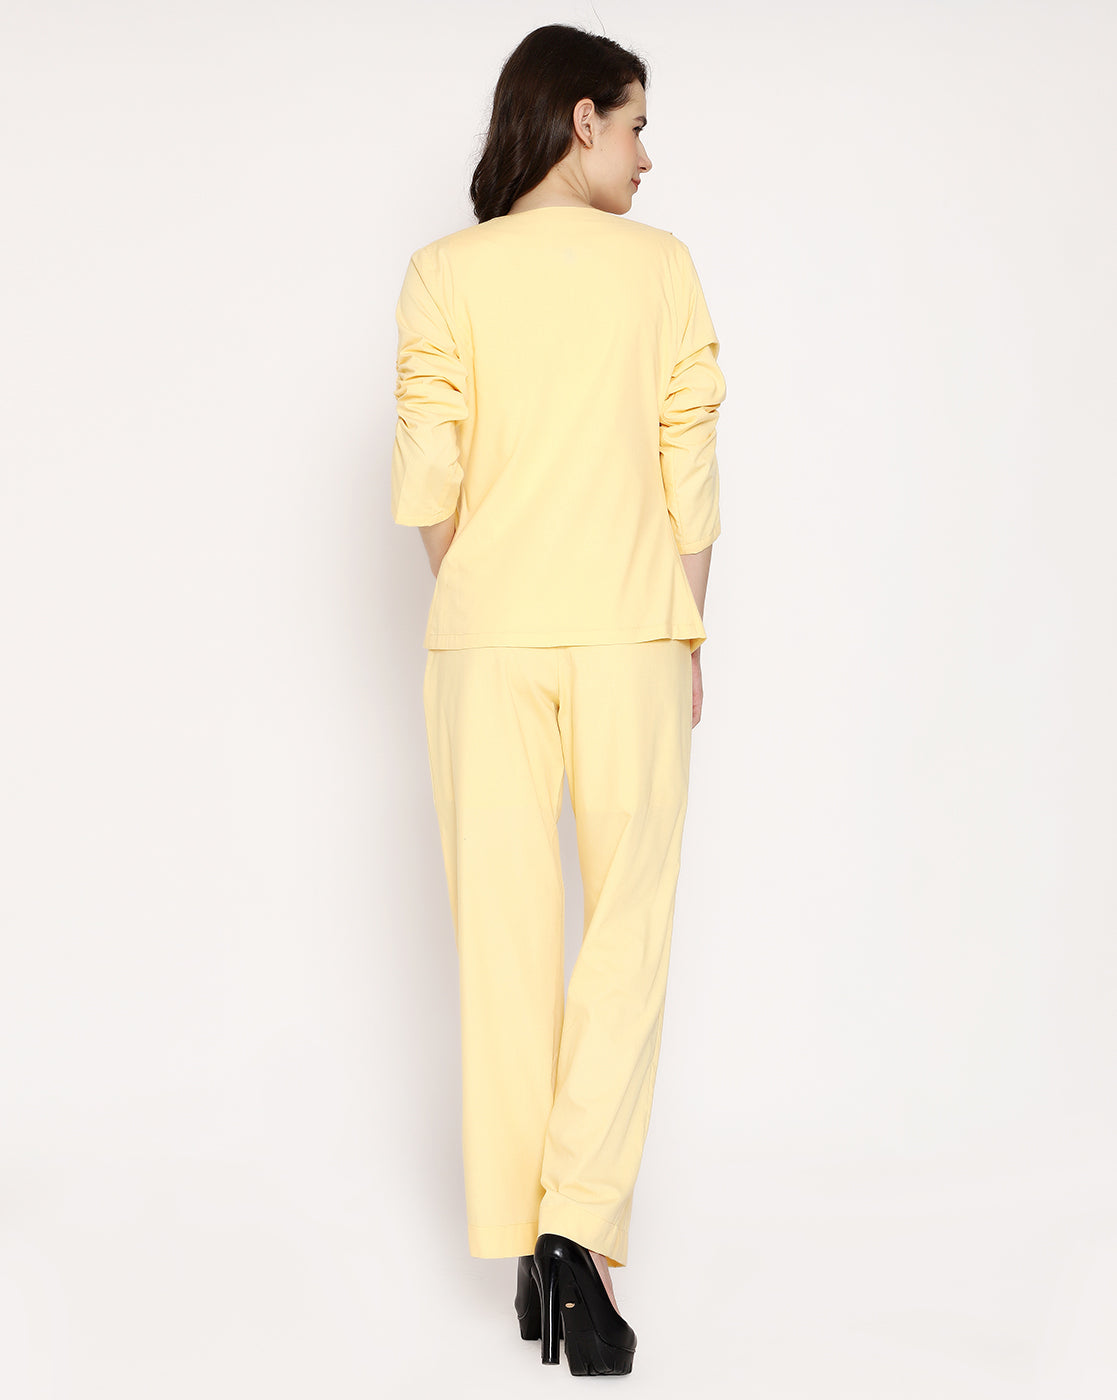 The French Trouser - Buttercup Yellow